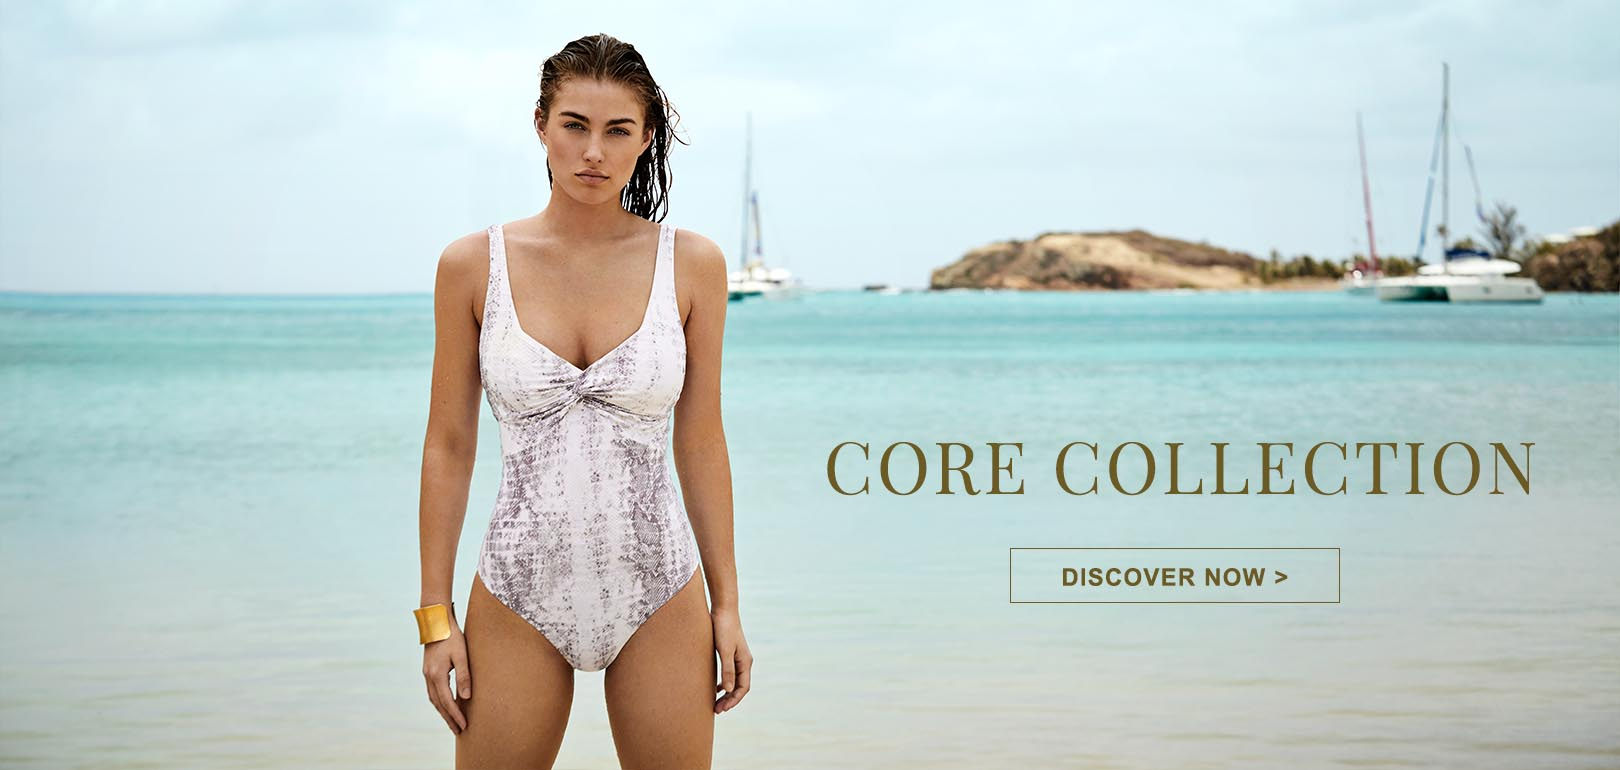 Core Collection